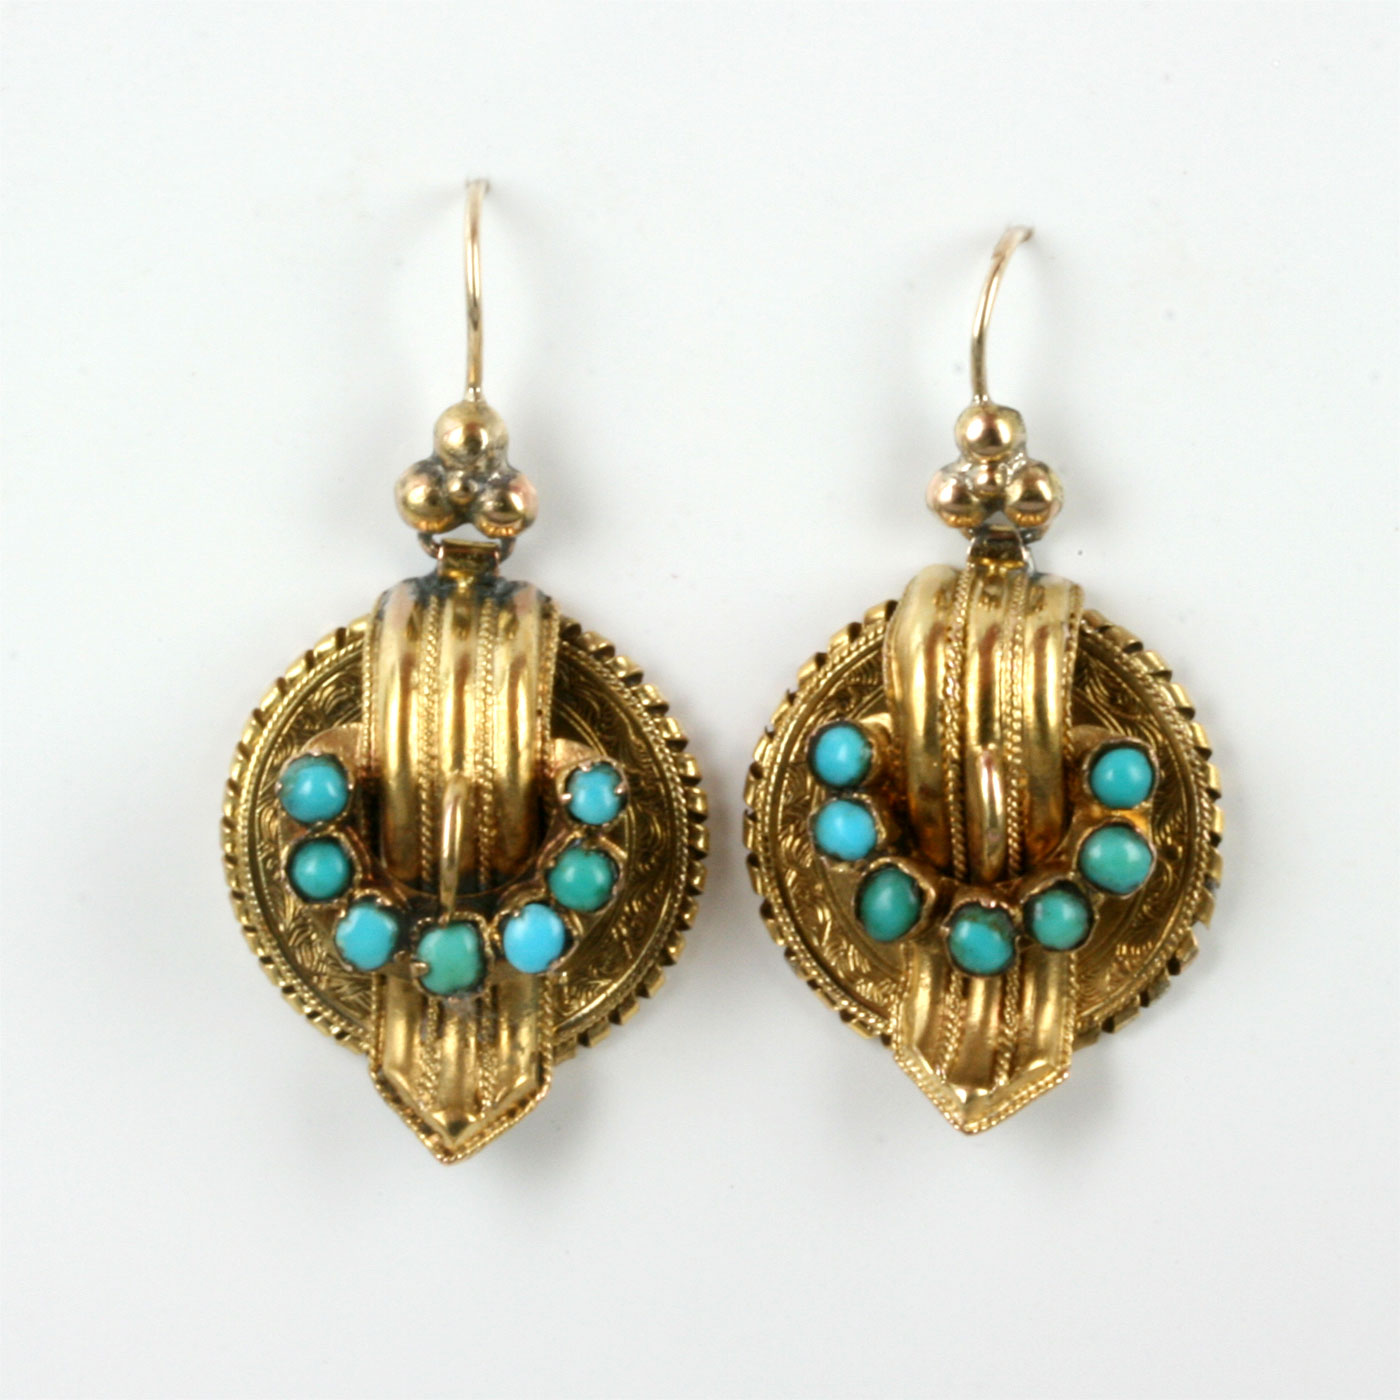 buy antique turquoise earrings in 15ct gold sold items. Black Bedroom Furniture Sets. Home Design Ideas